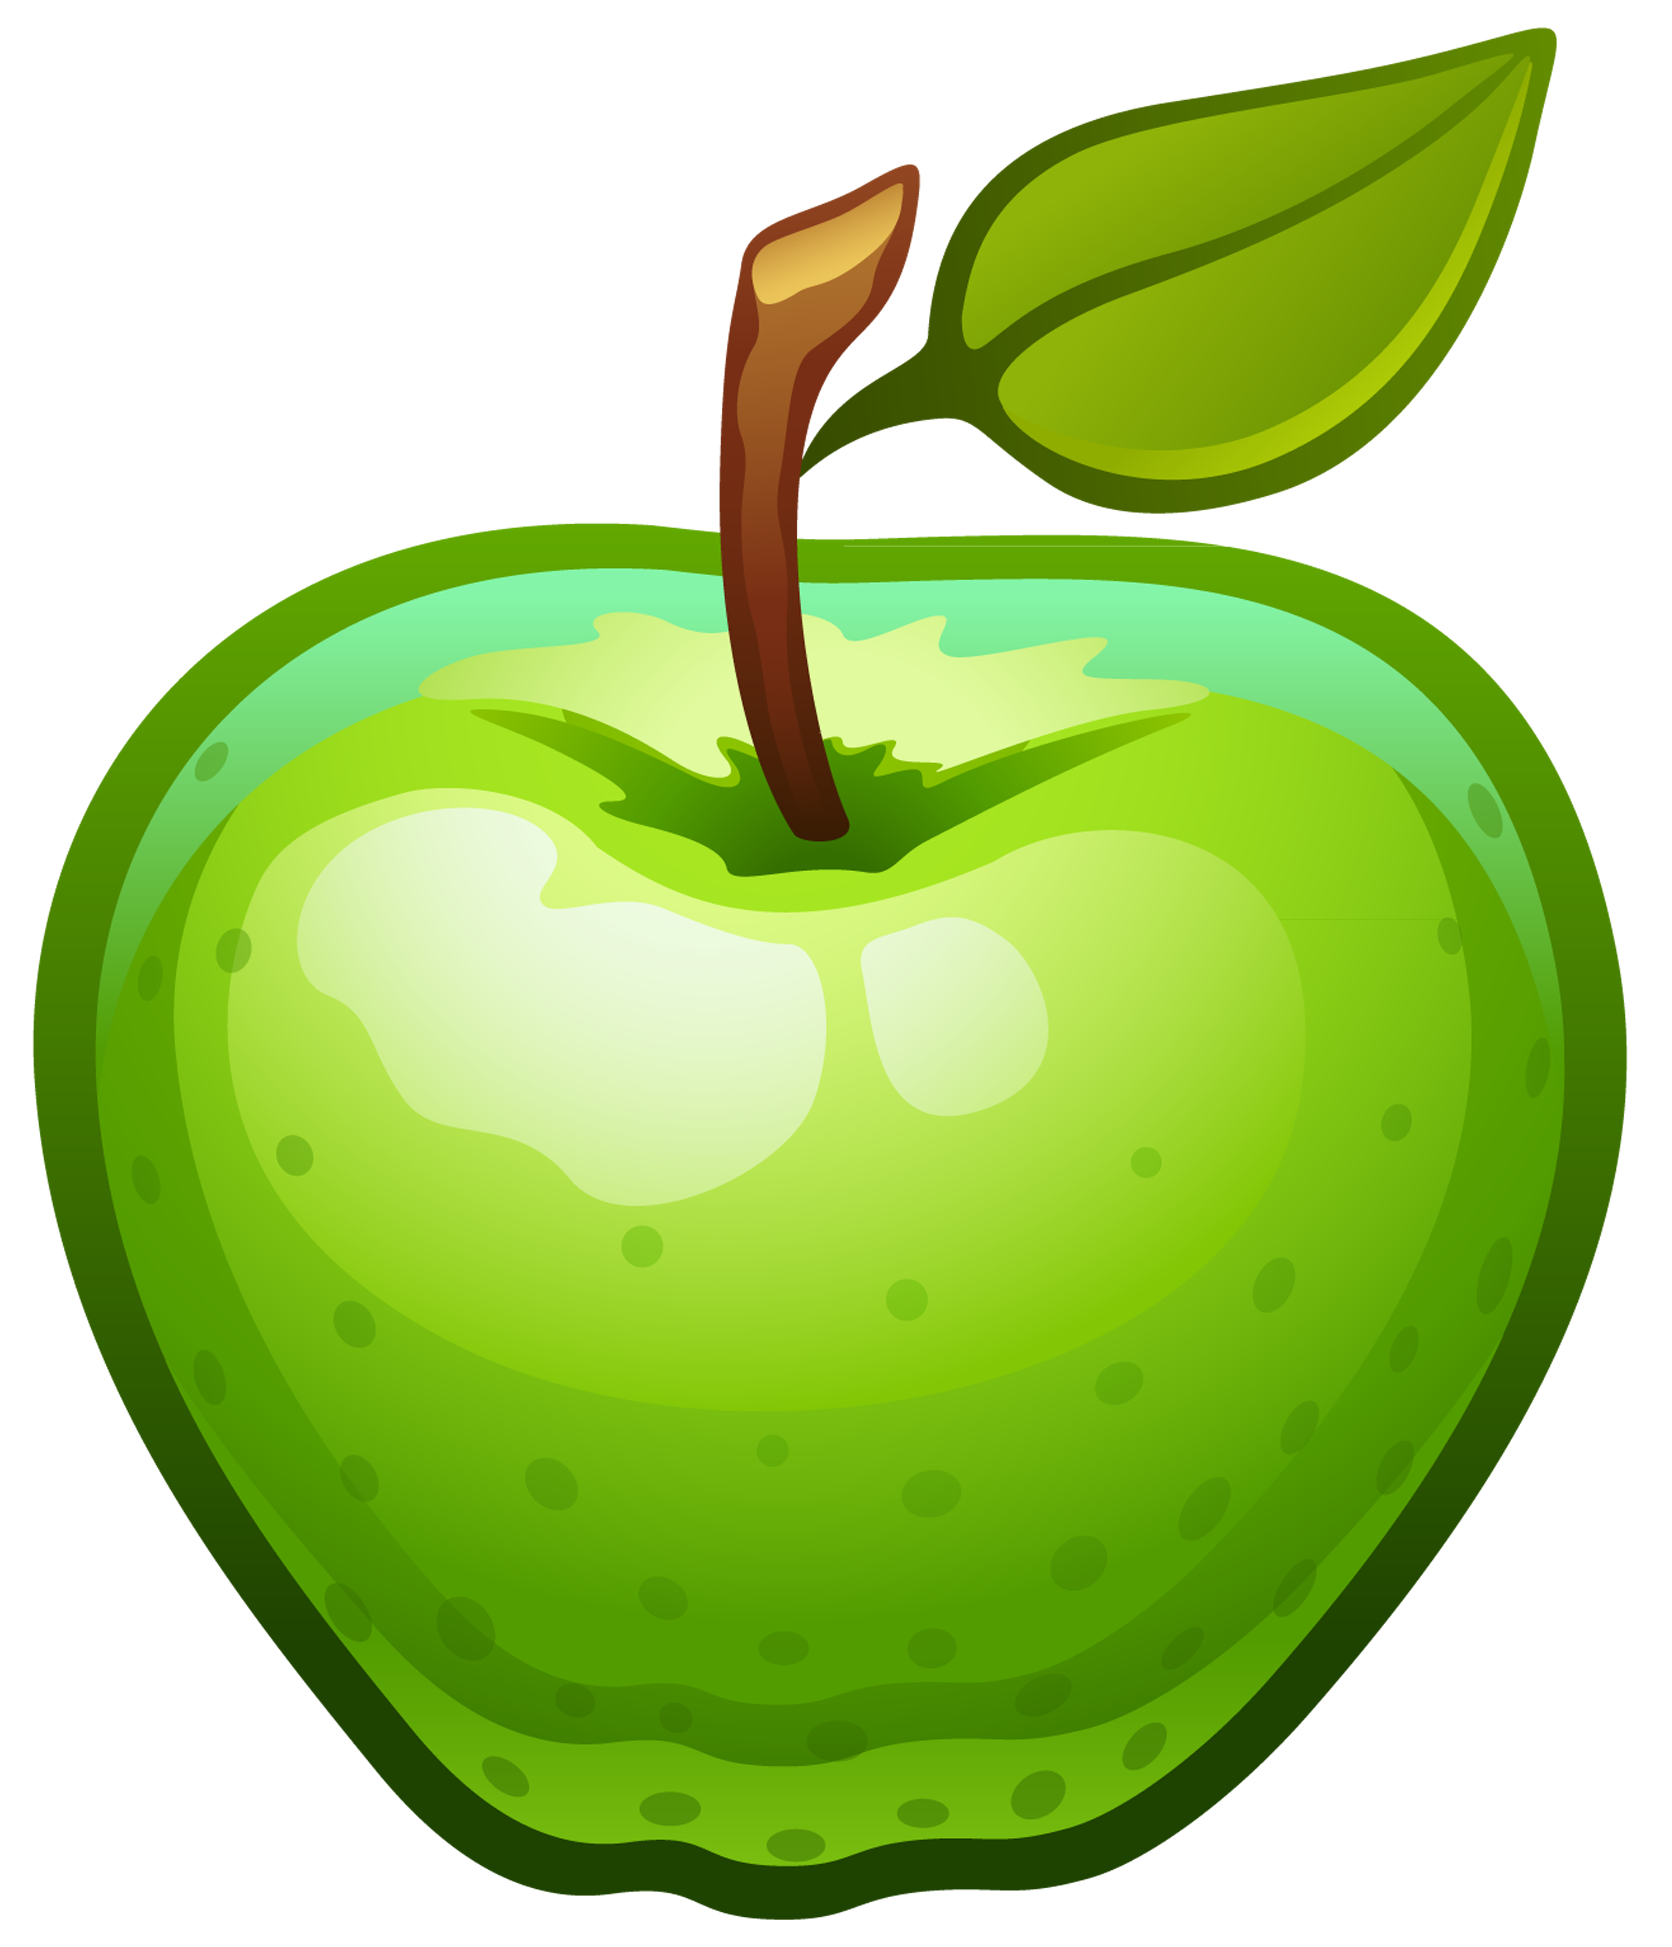 Simple apple clipart clip art library library Large Painted Green Apple PNG Clipart | Gallery Yopriceville - High ... clip art library library